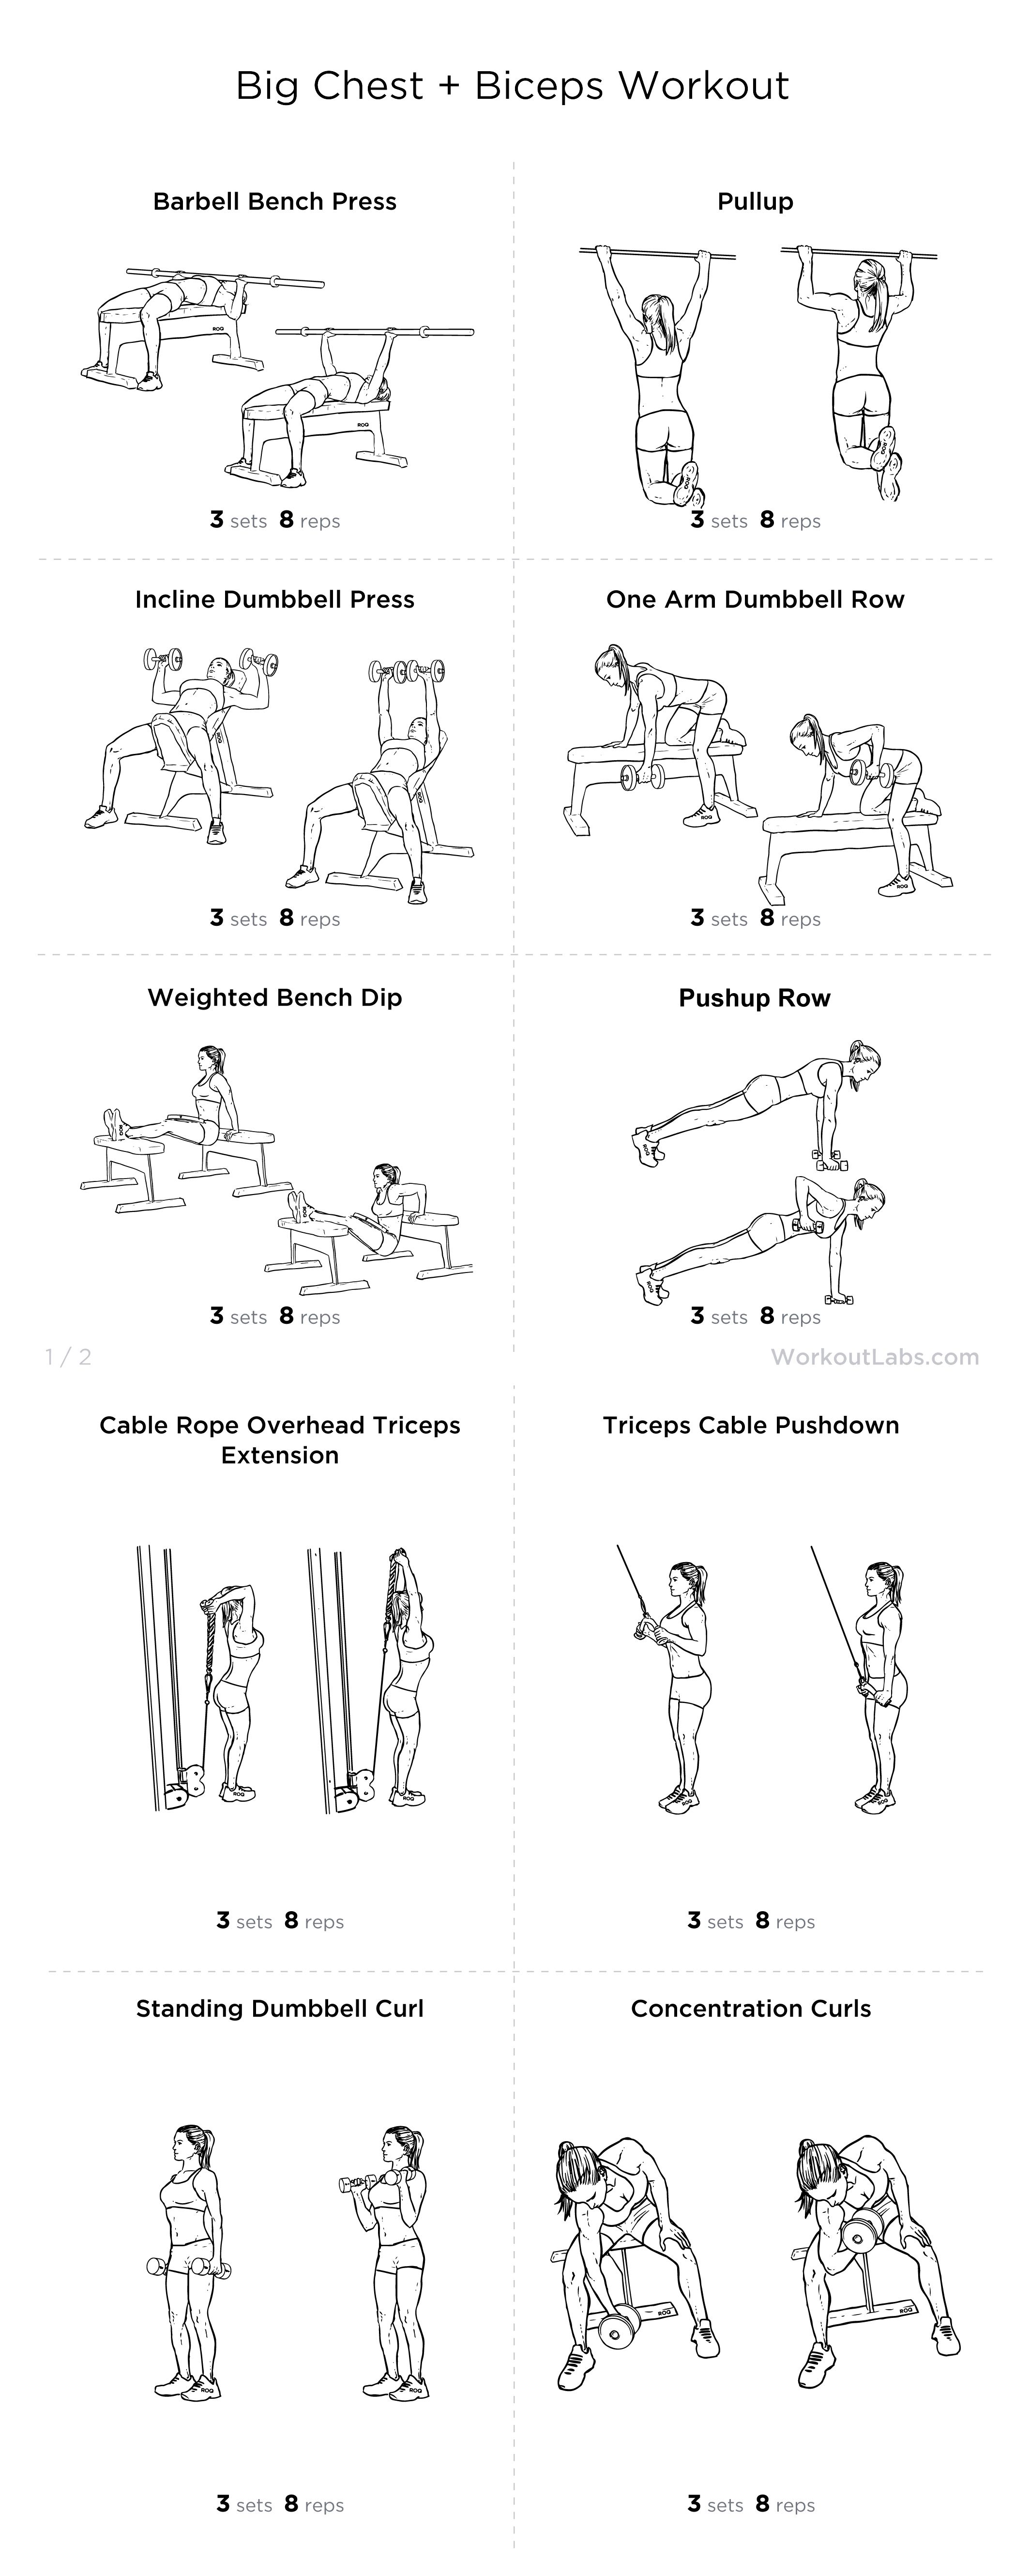 Big Chest Biceps Workout